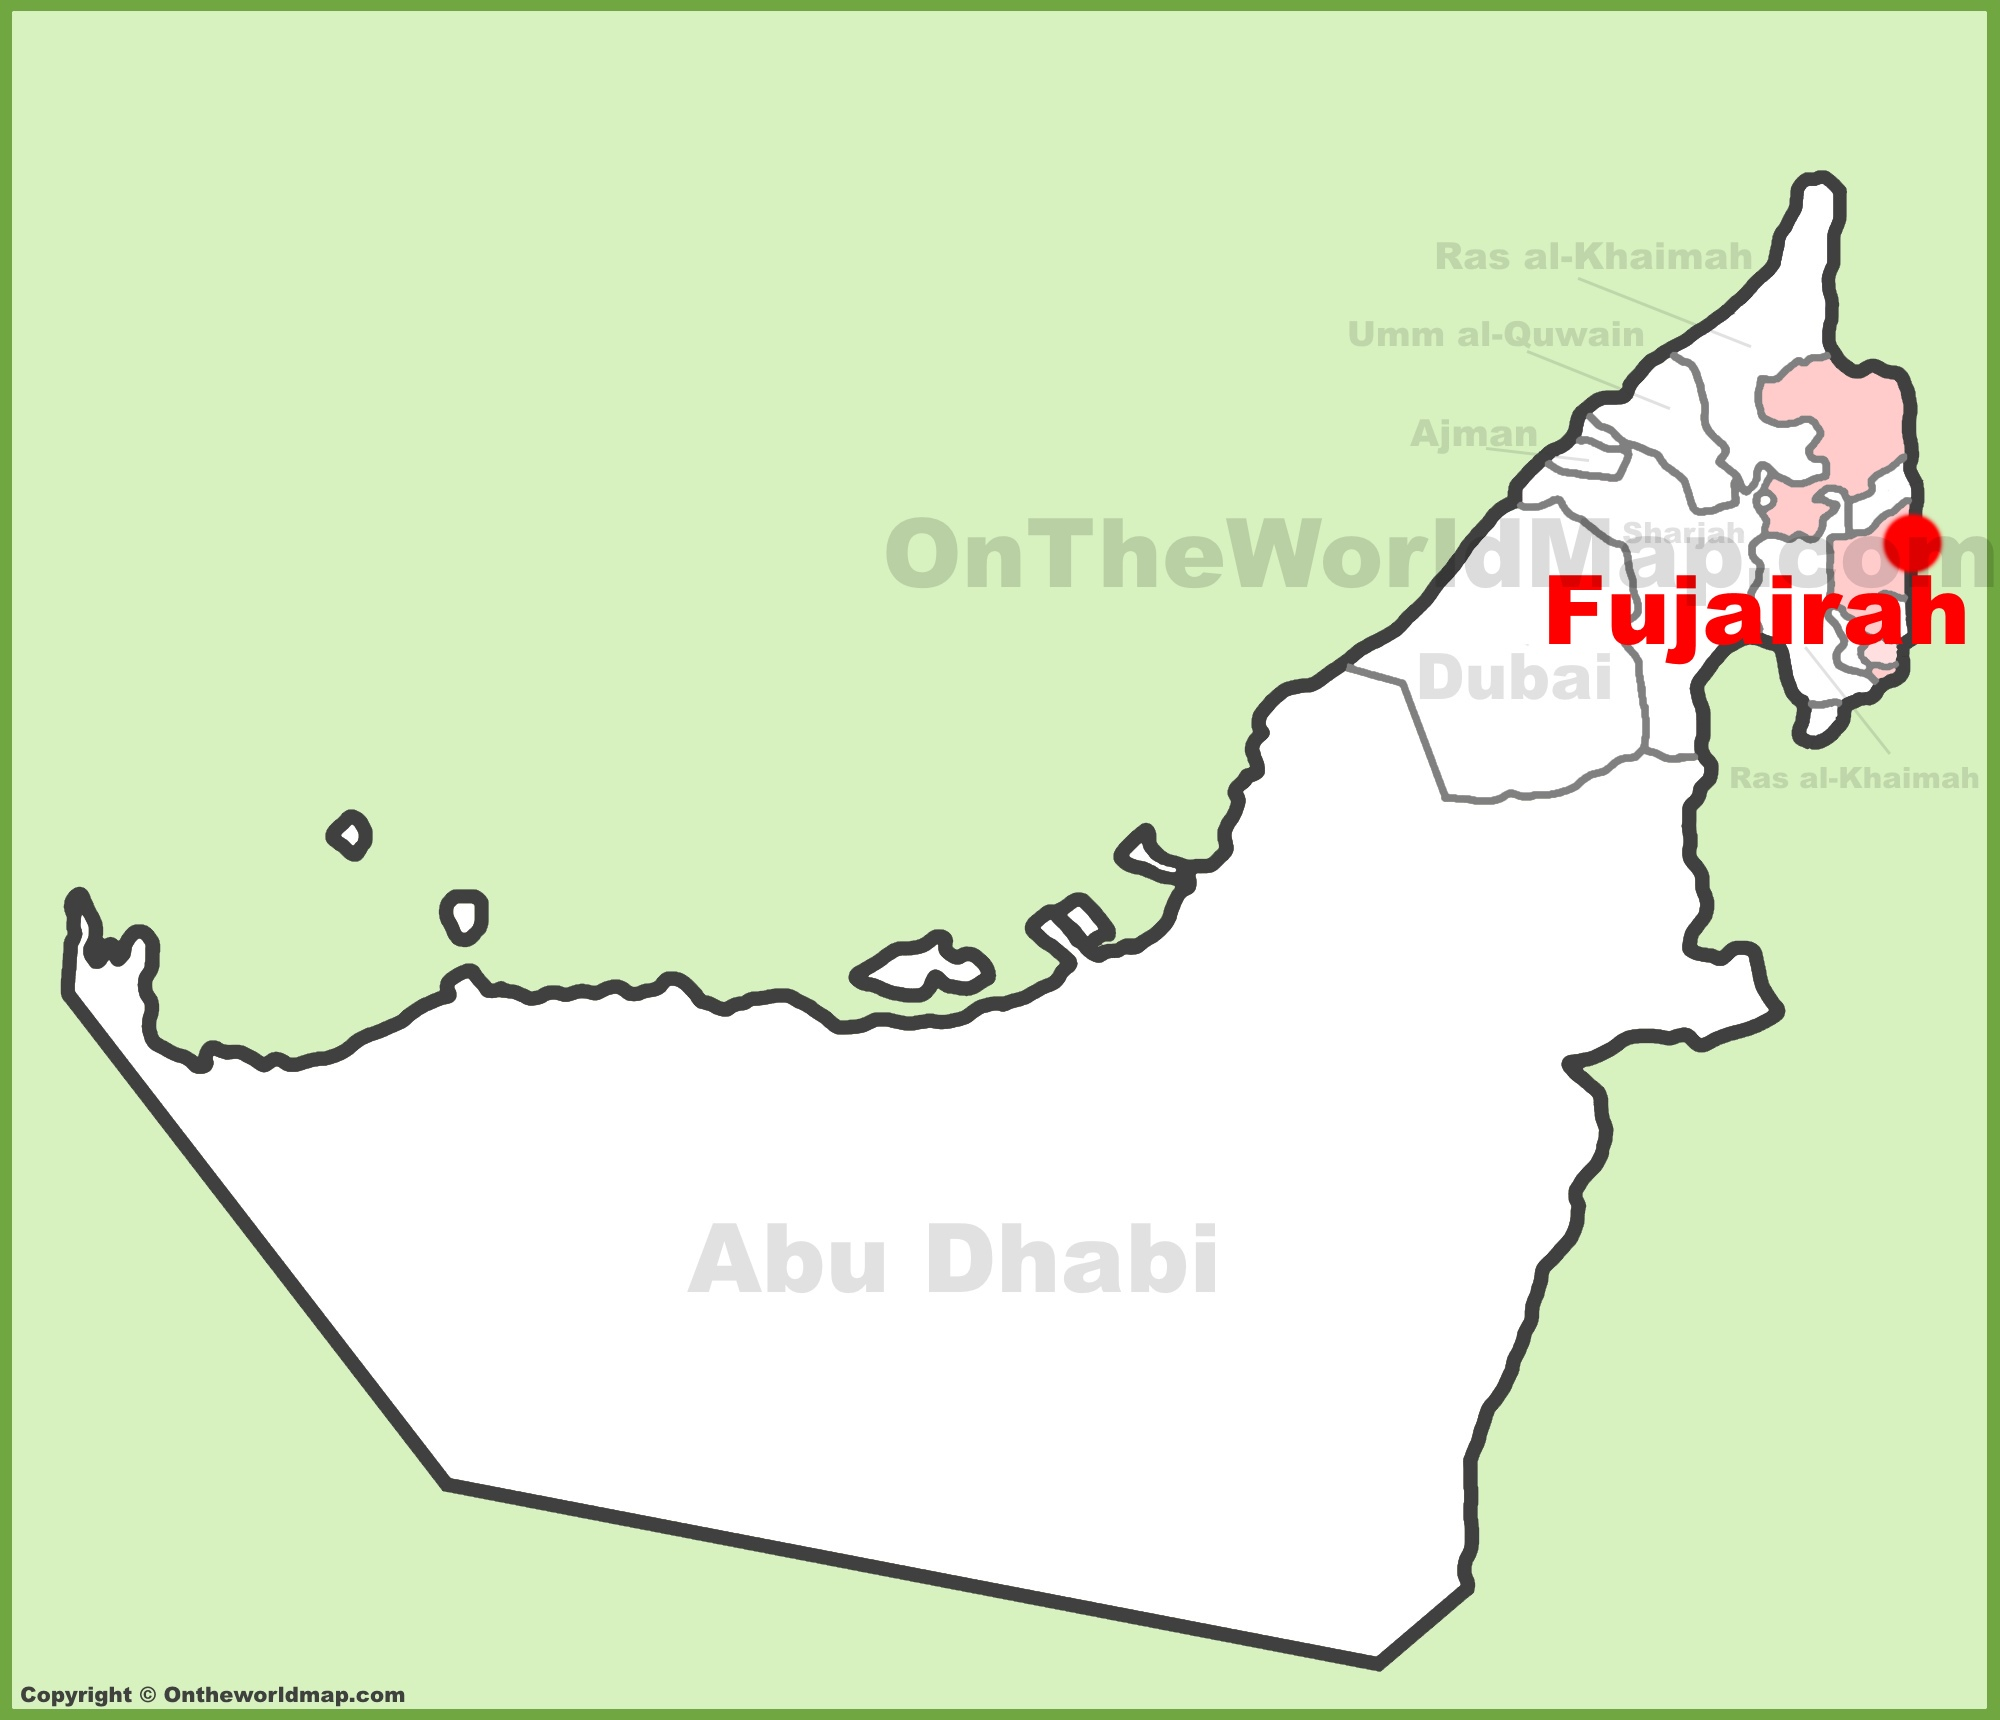 Fujairah location on the UAE United Arab Emirates Map